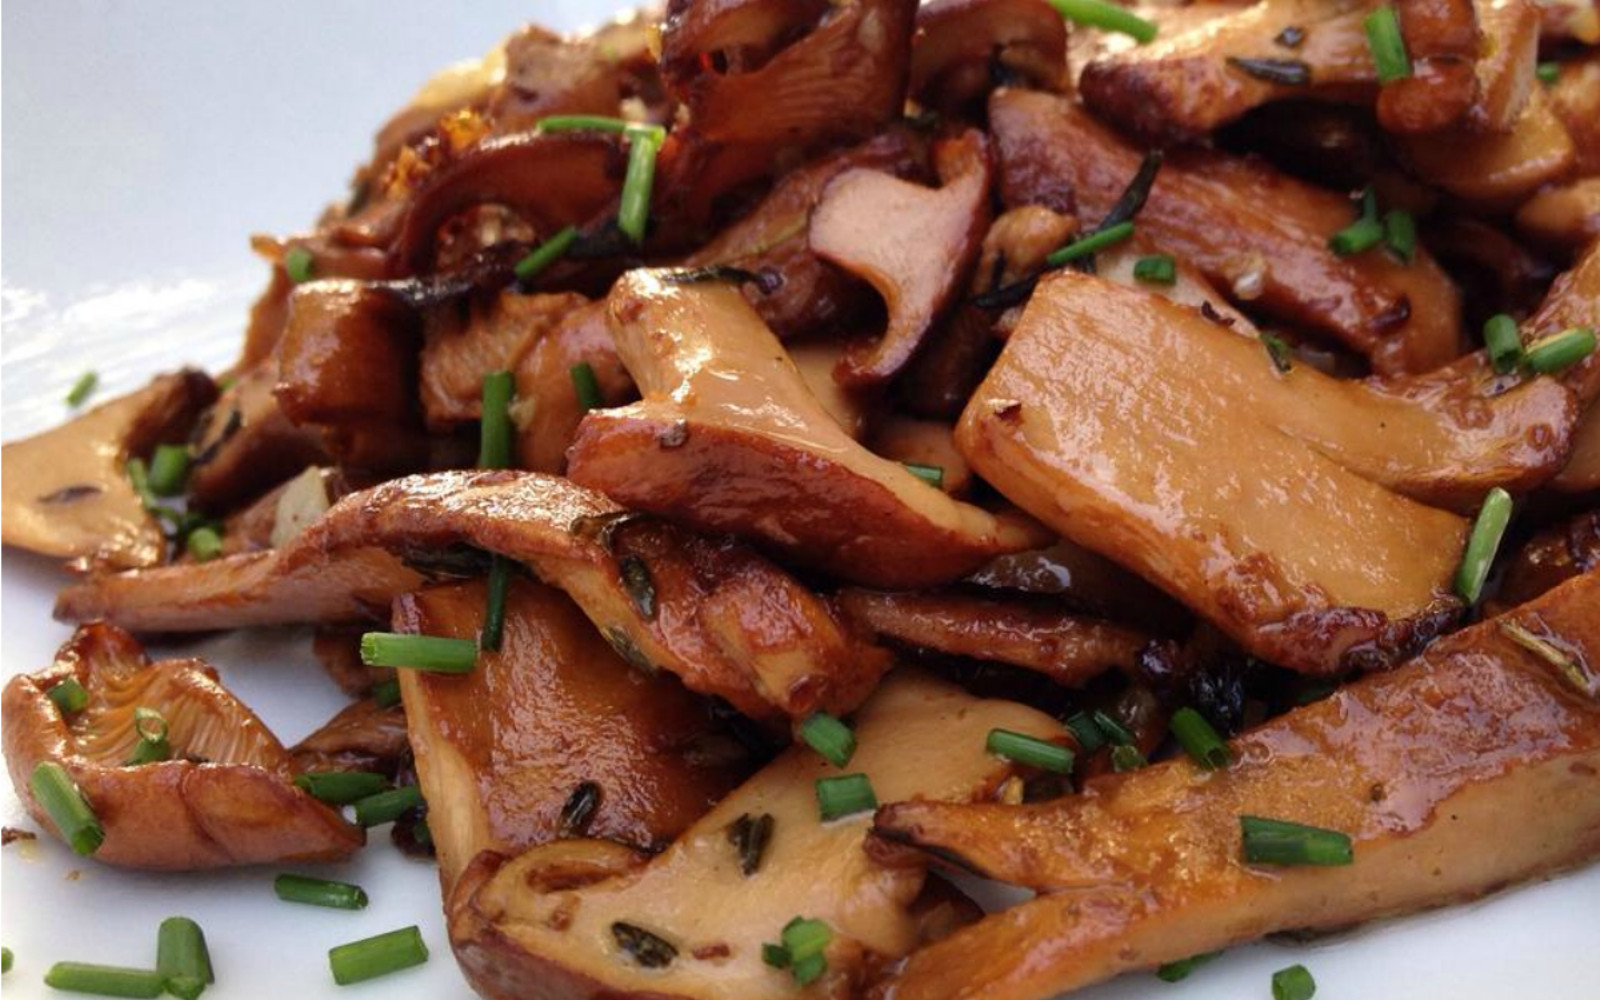 The Essential Guide to Cooking Mushrooms